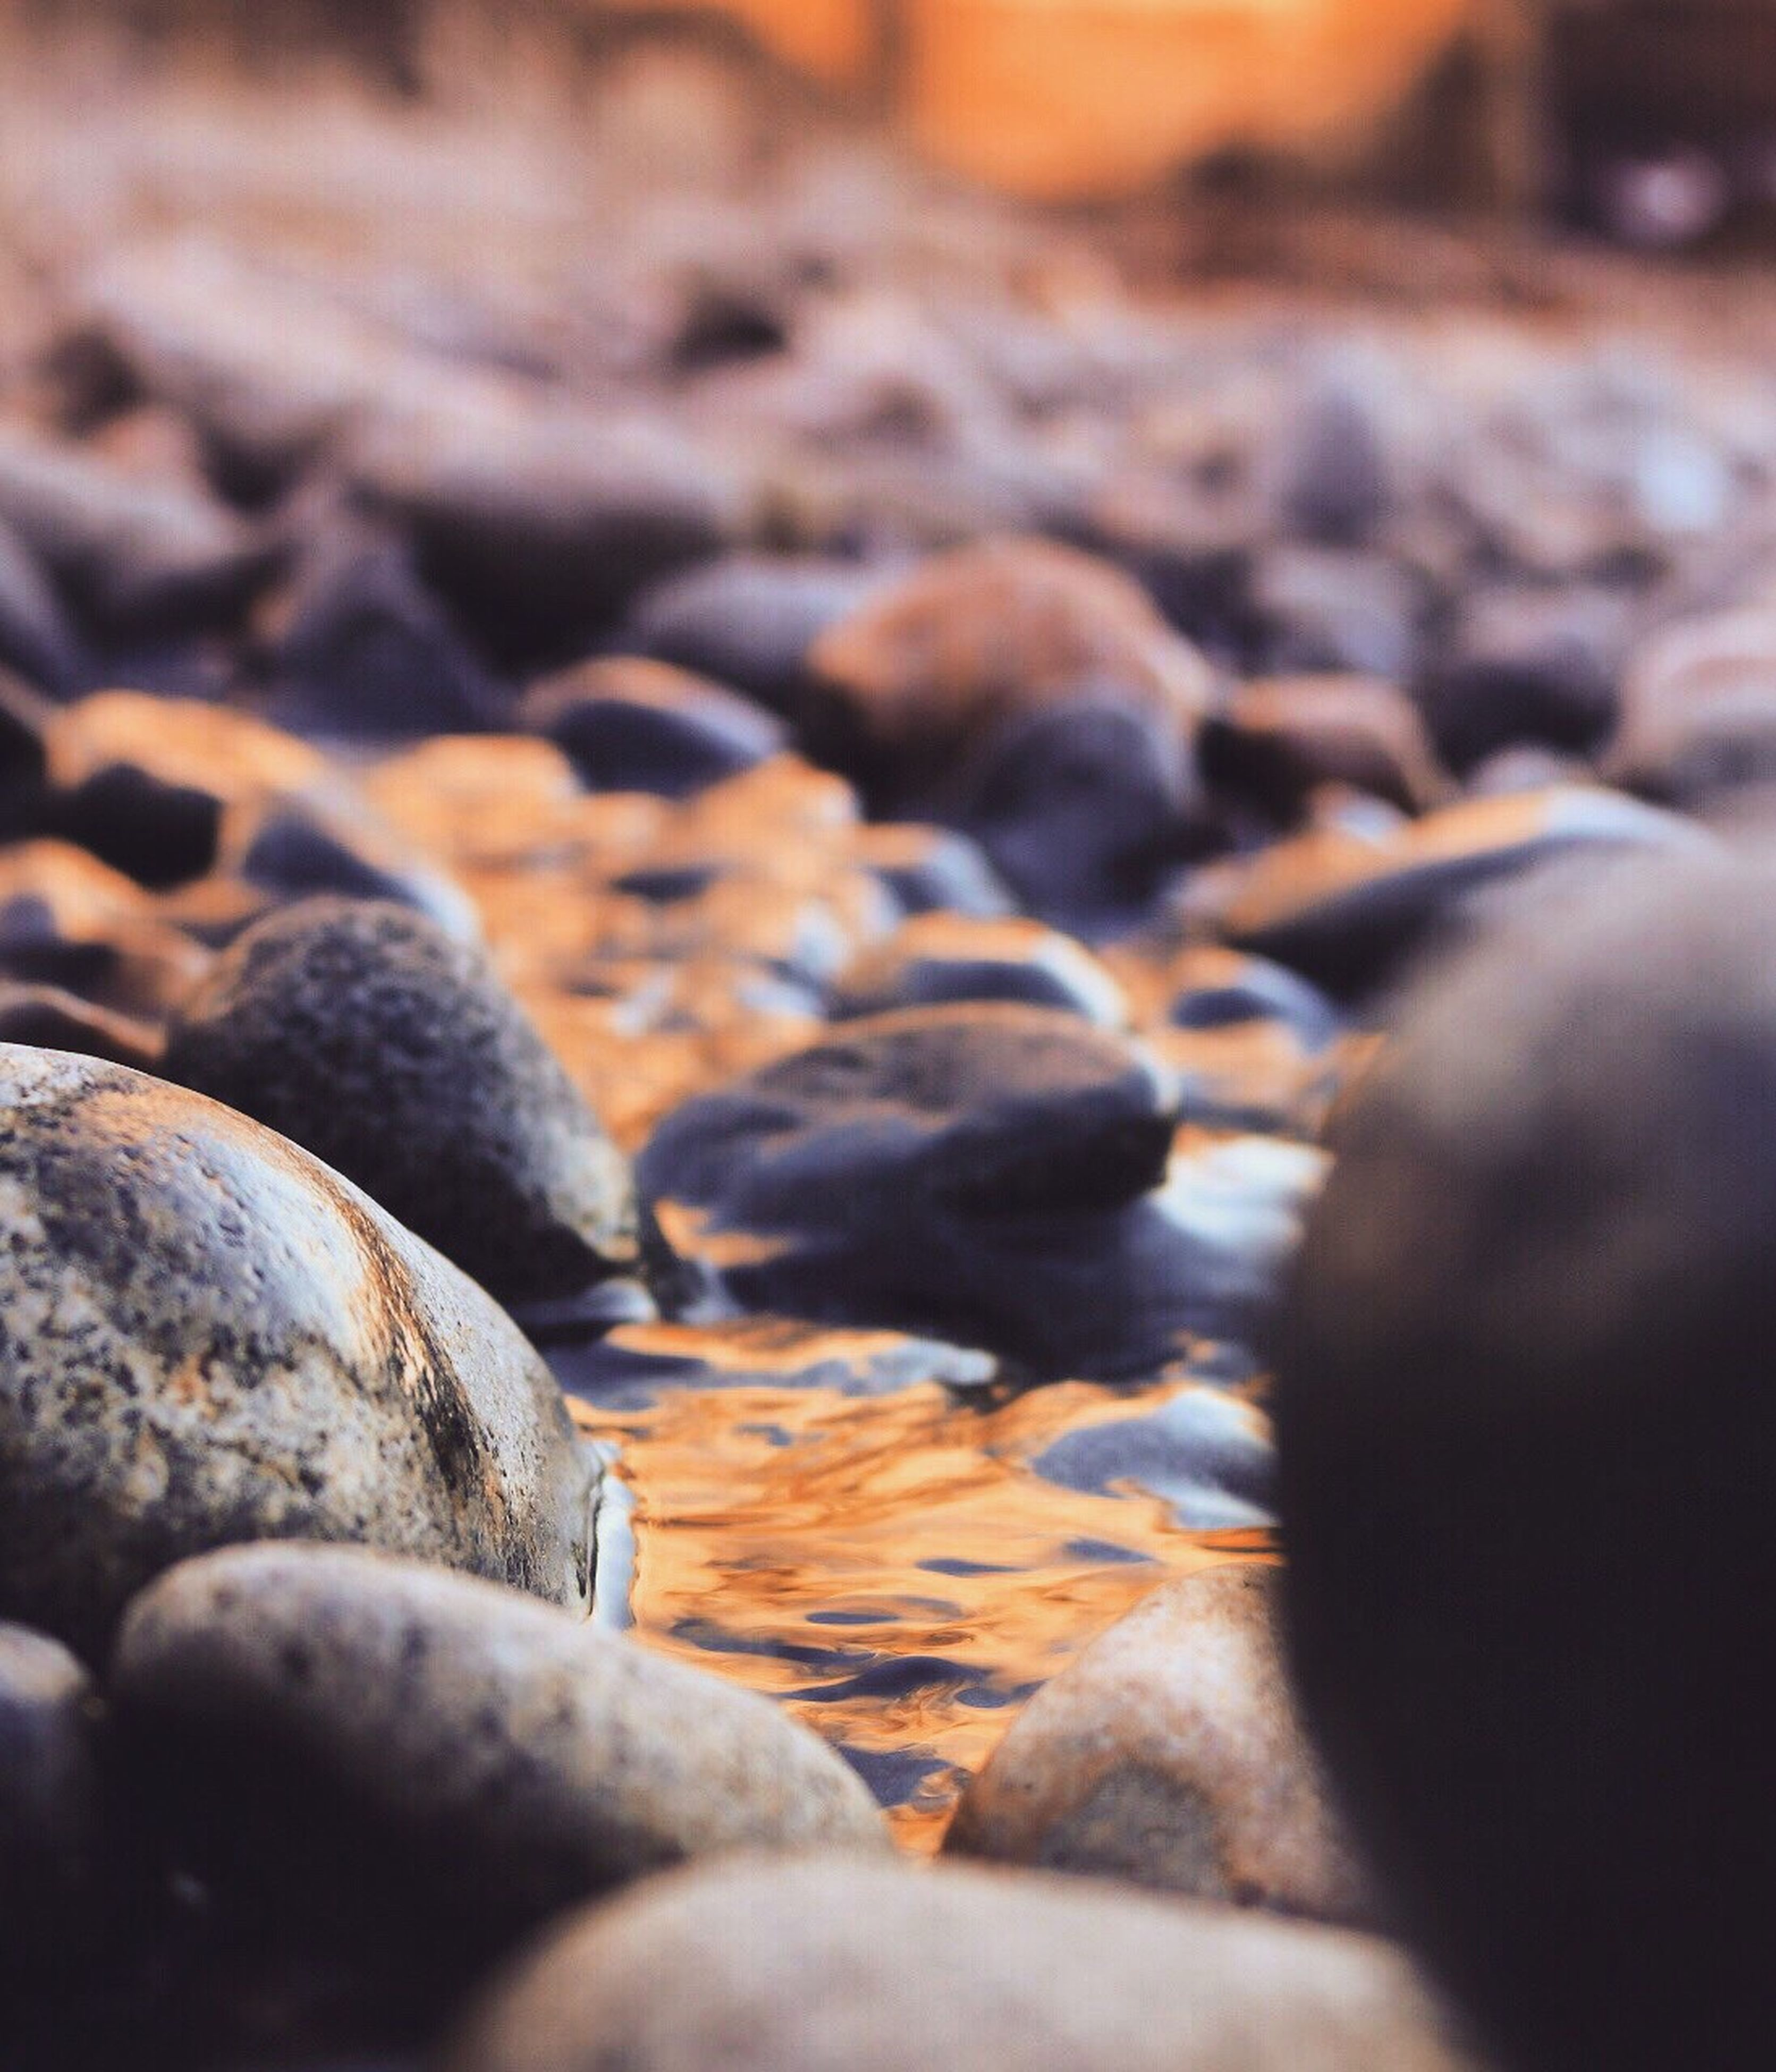 no people, beach, textured, close-up, nature, pebble beach, indoors, day